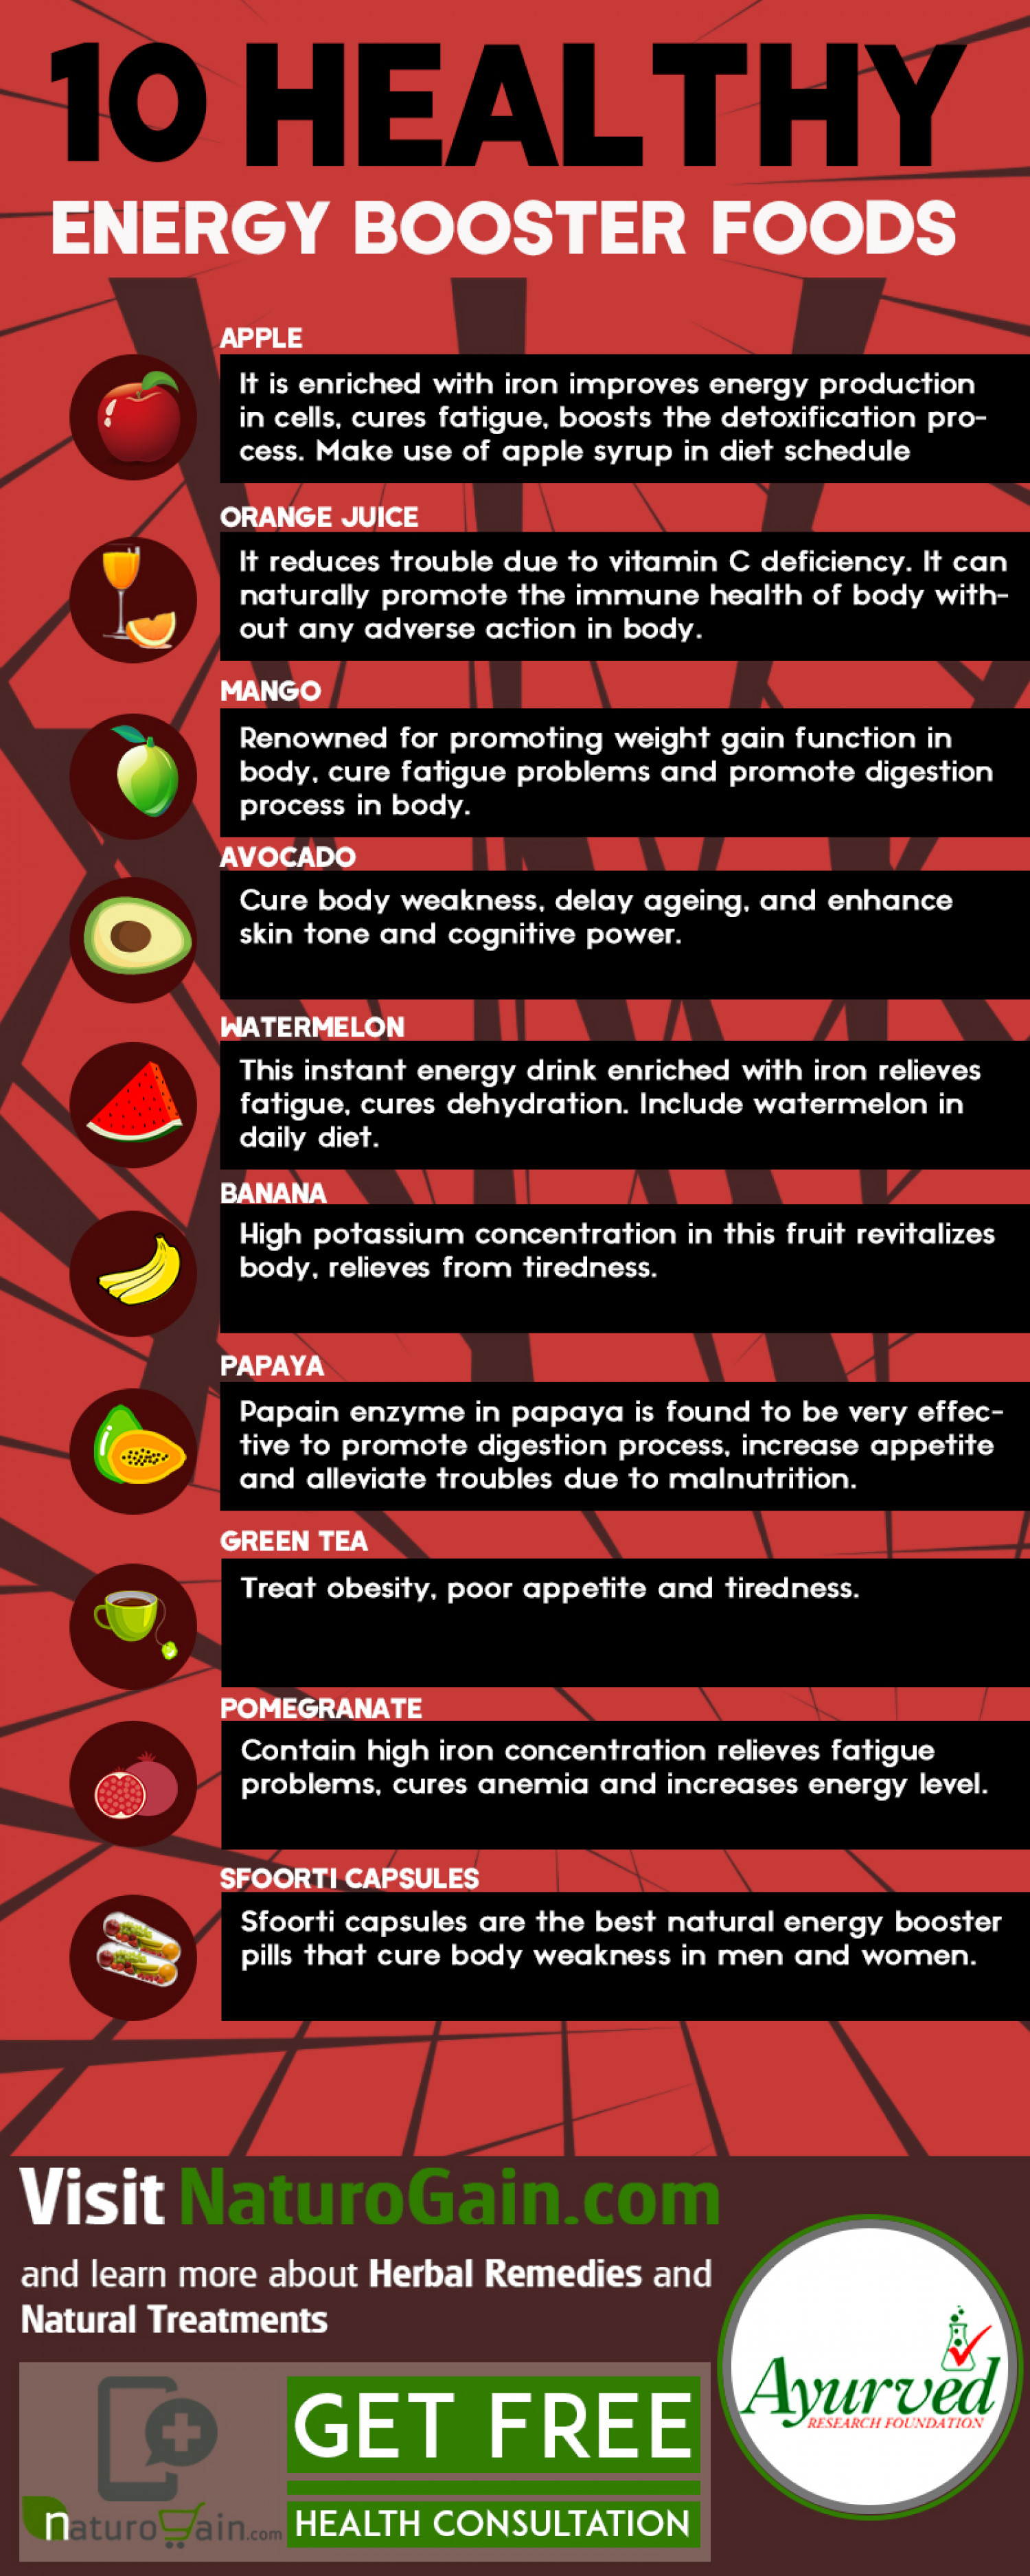 10 Natural Energy Booster Foods to Cure Body Weakness at Home Infographic